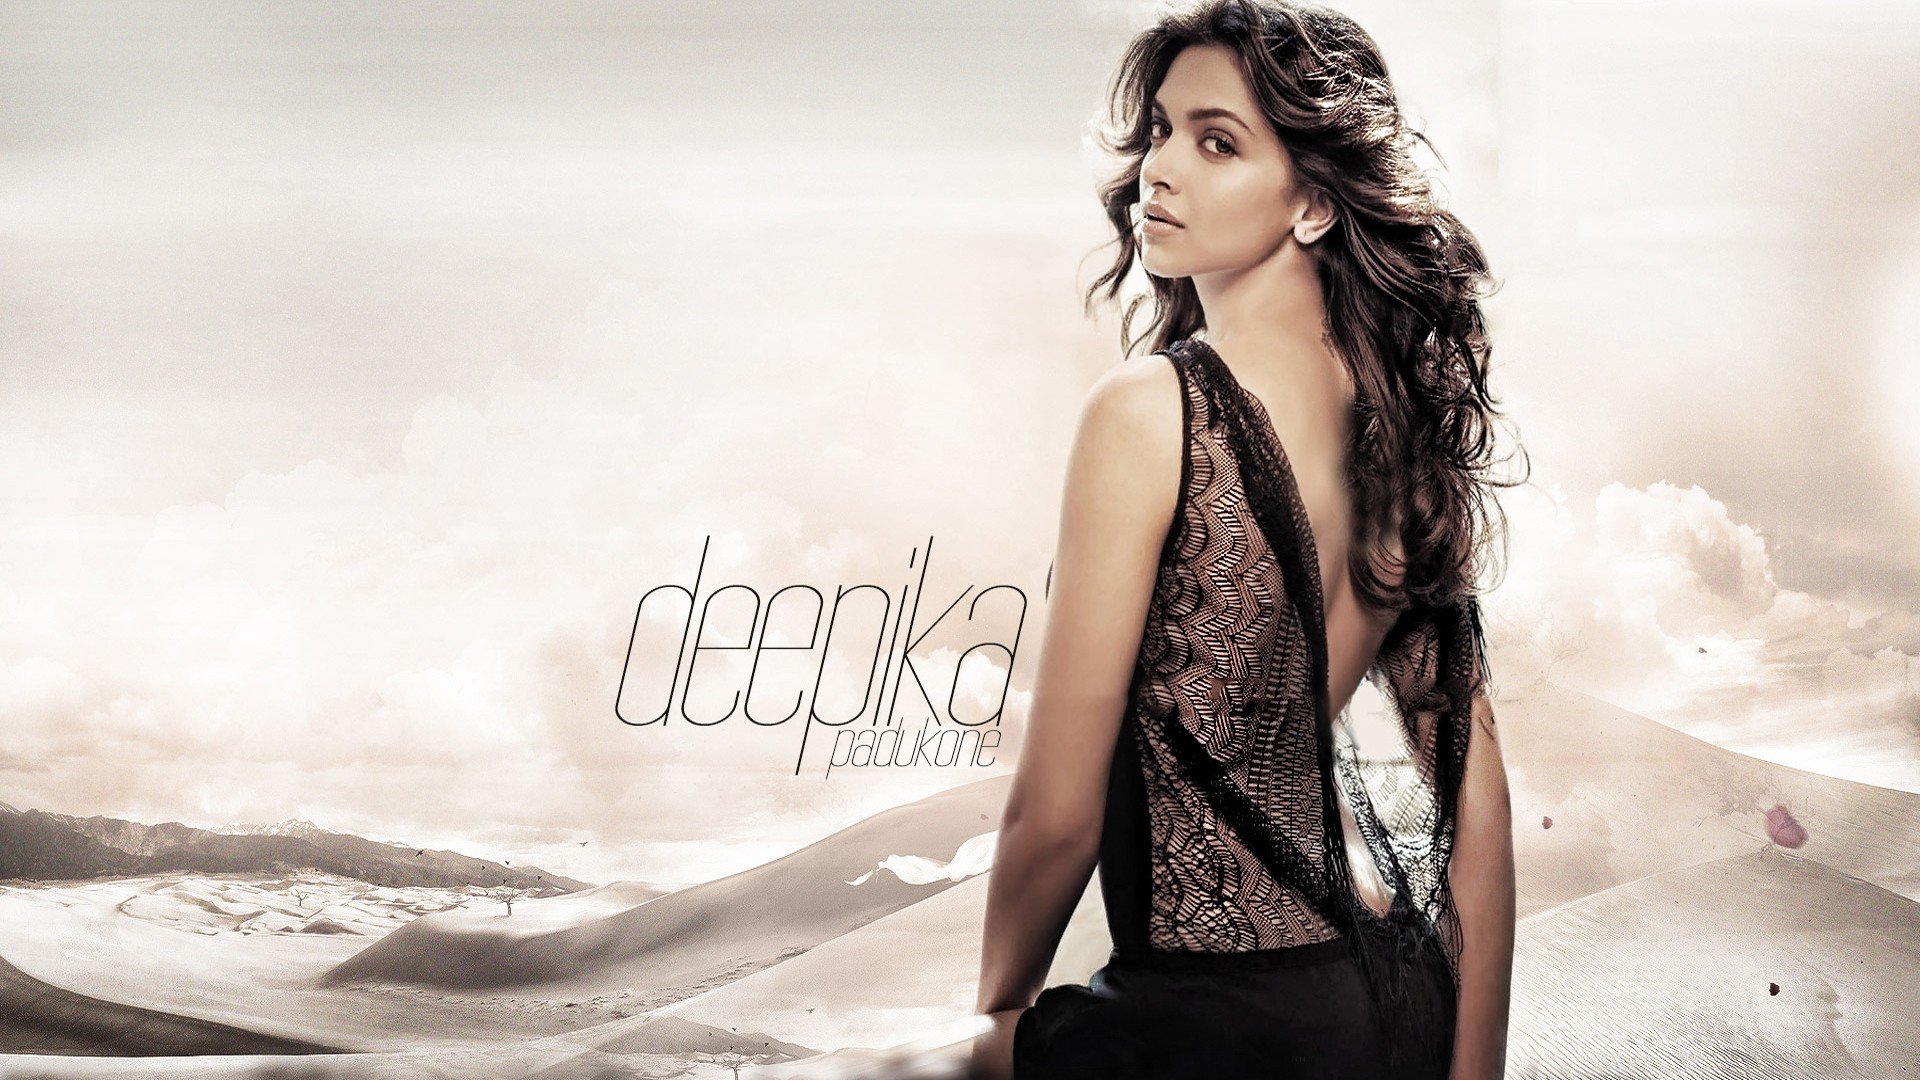 deepika padukone wallpapers hot - sf wallpaper